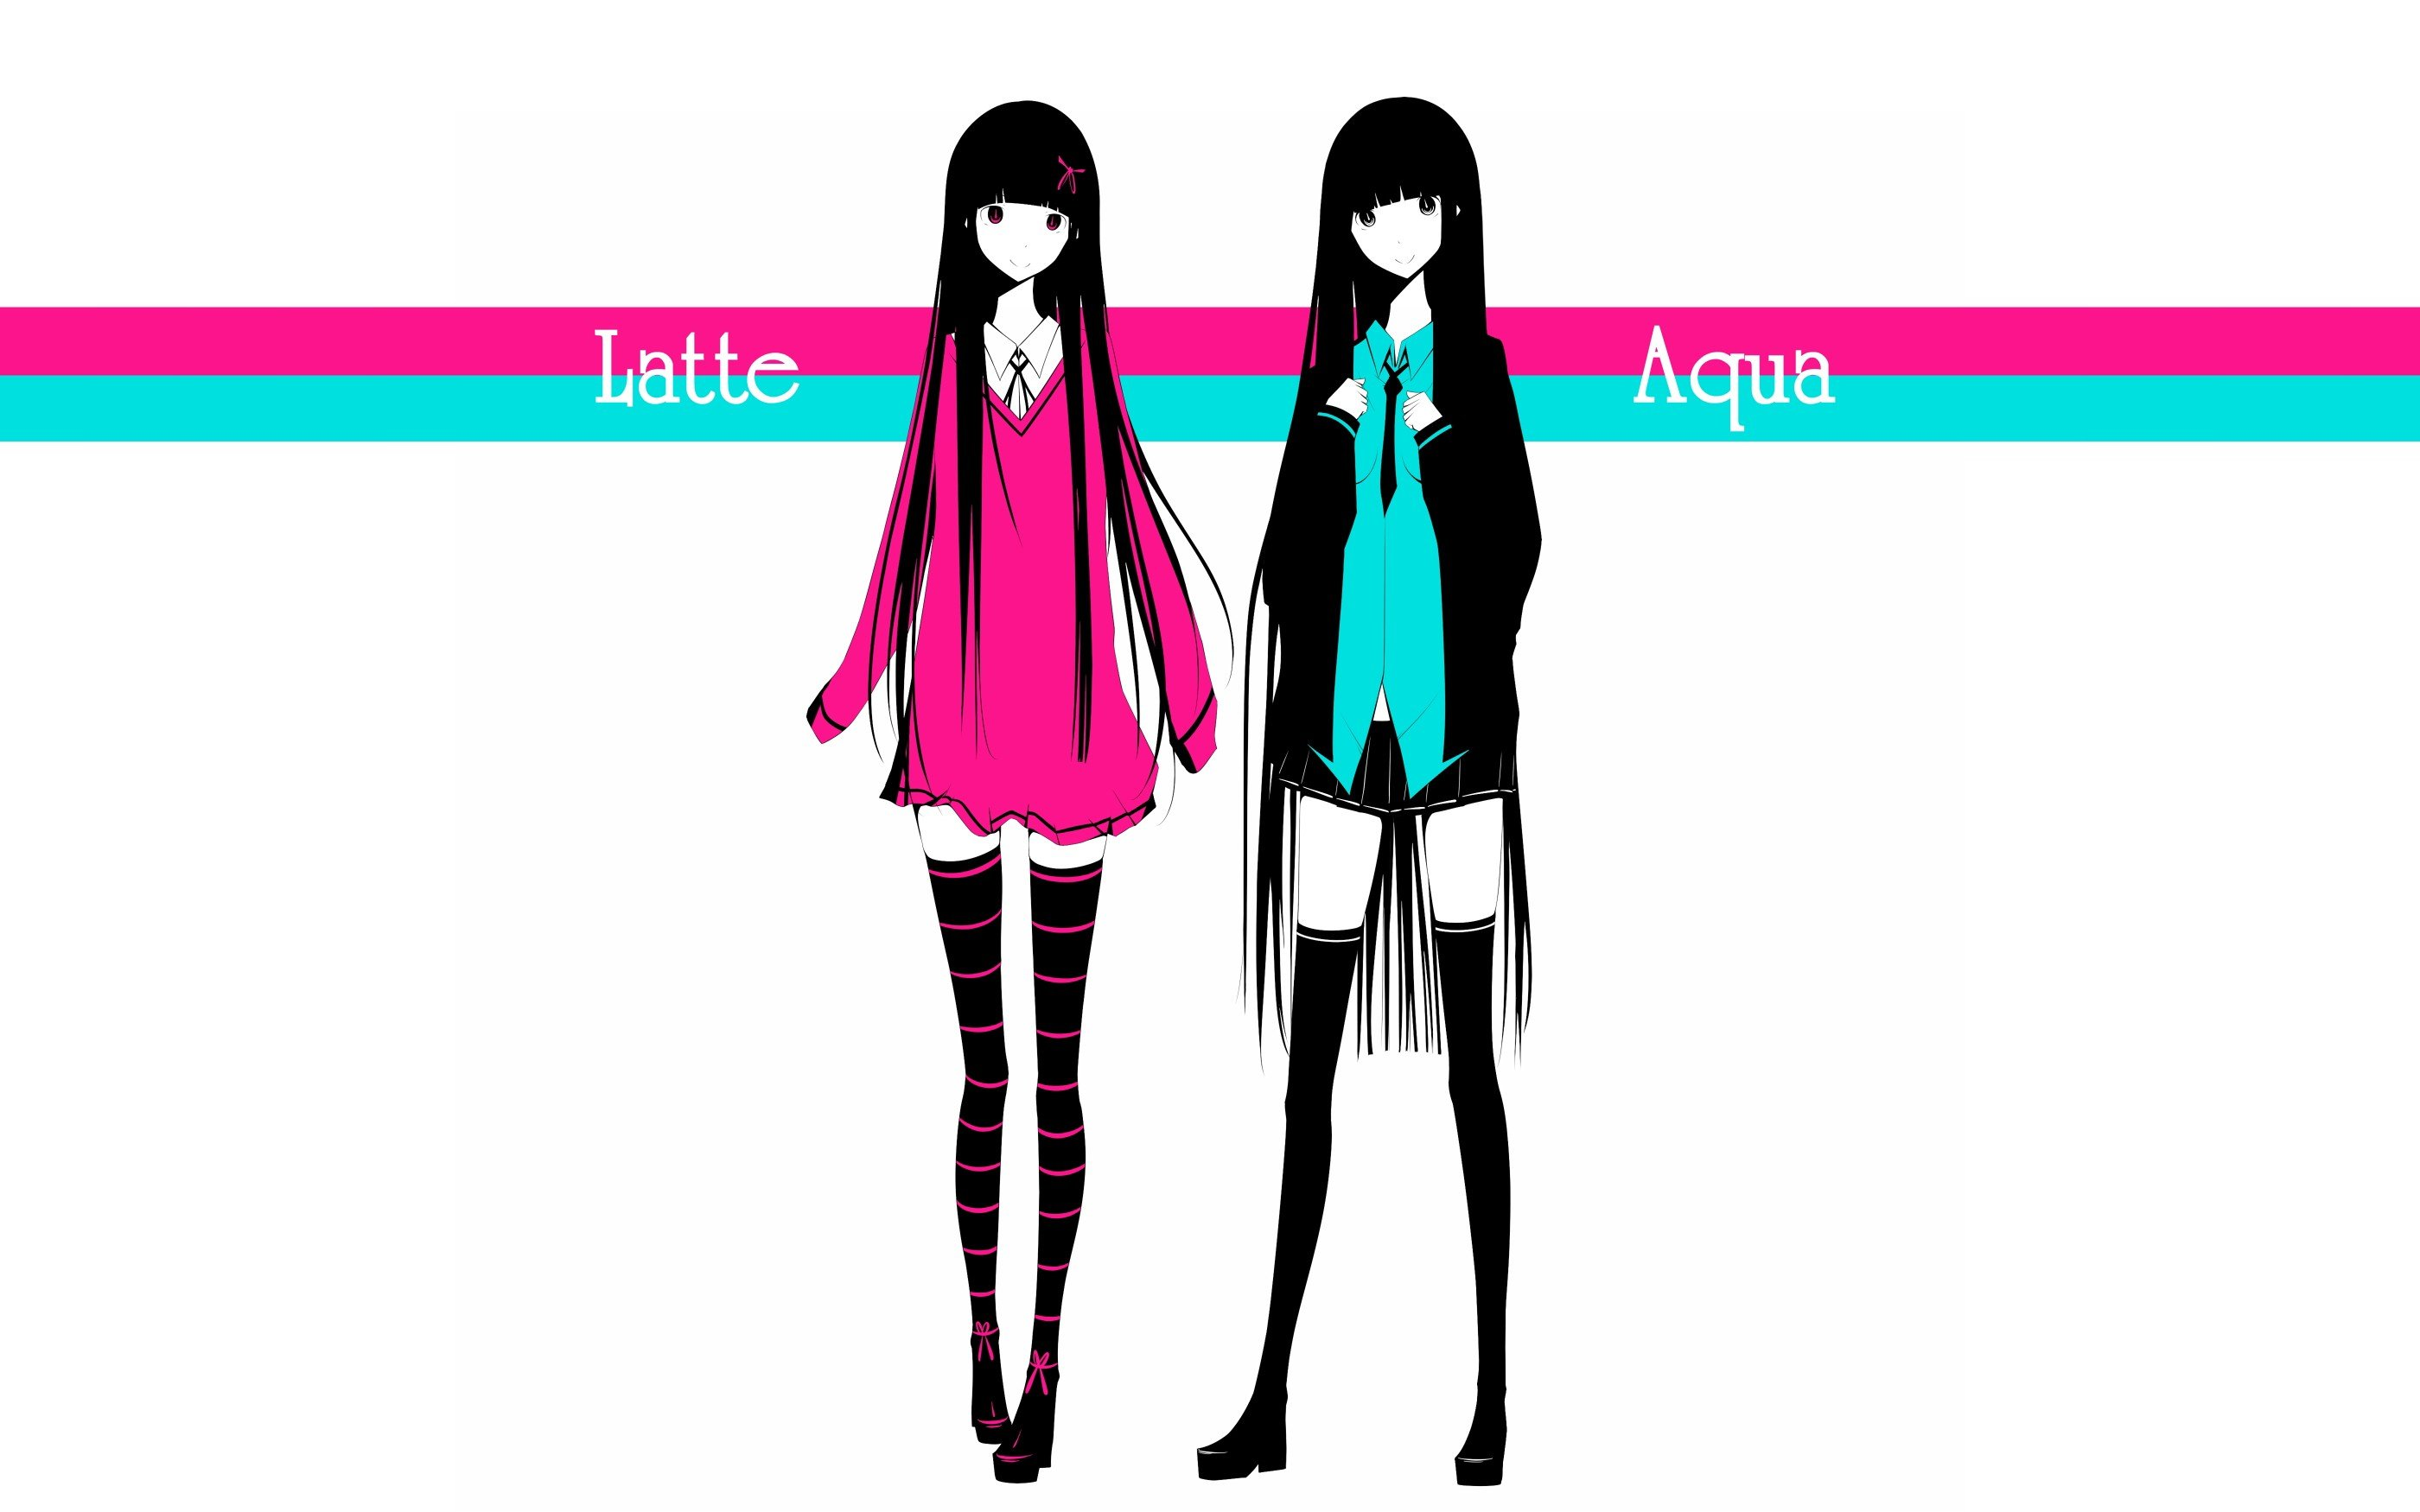 boots text skirts long hair jackets smiling selective coloring hair ribbons simple background anime girls white background original characters haru@